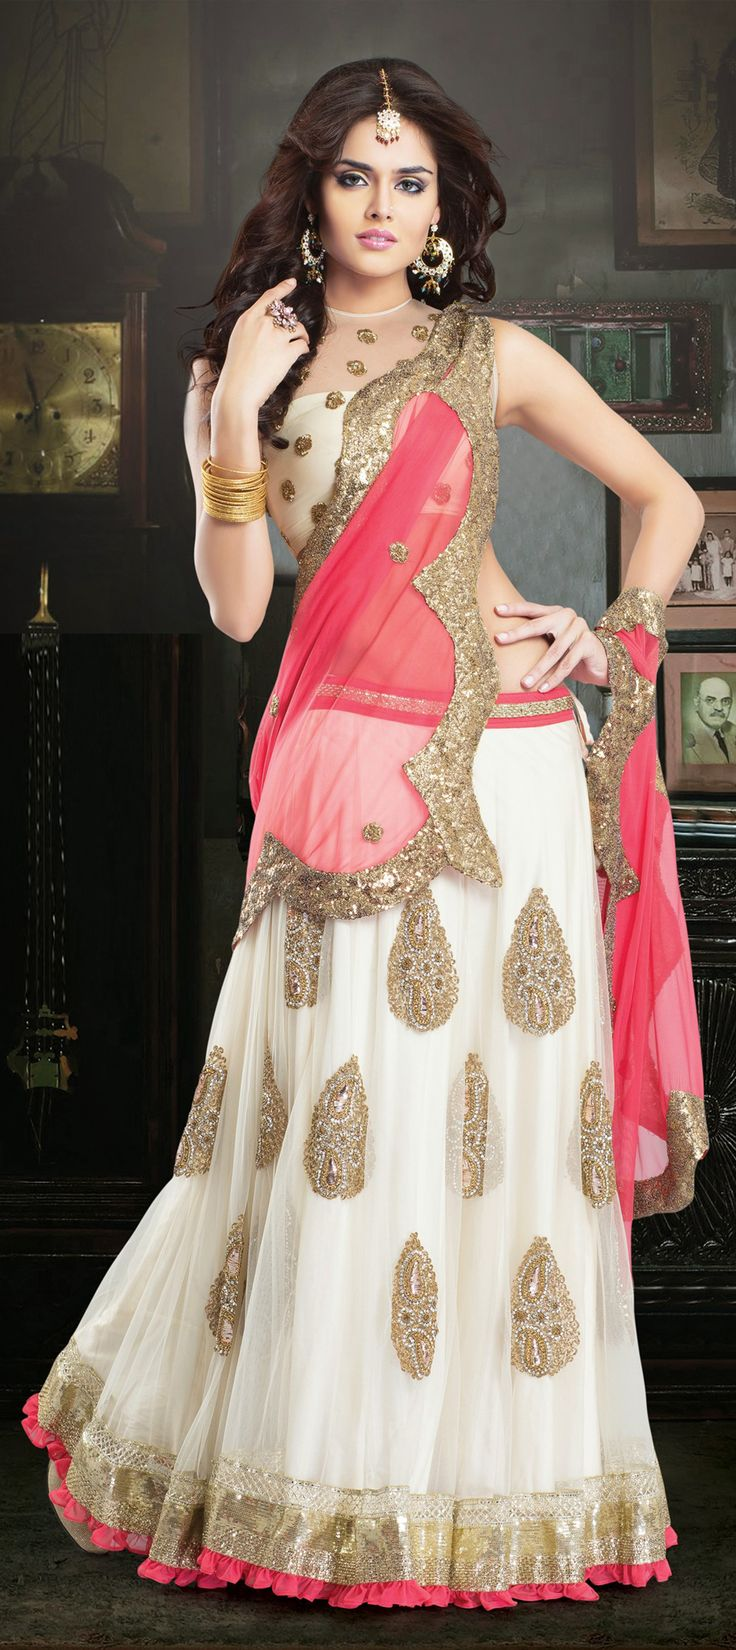 151564: White and Off White color family Bollywood Lehenga.